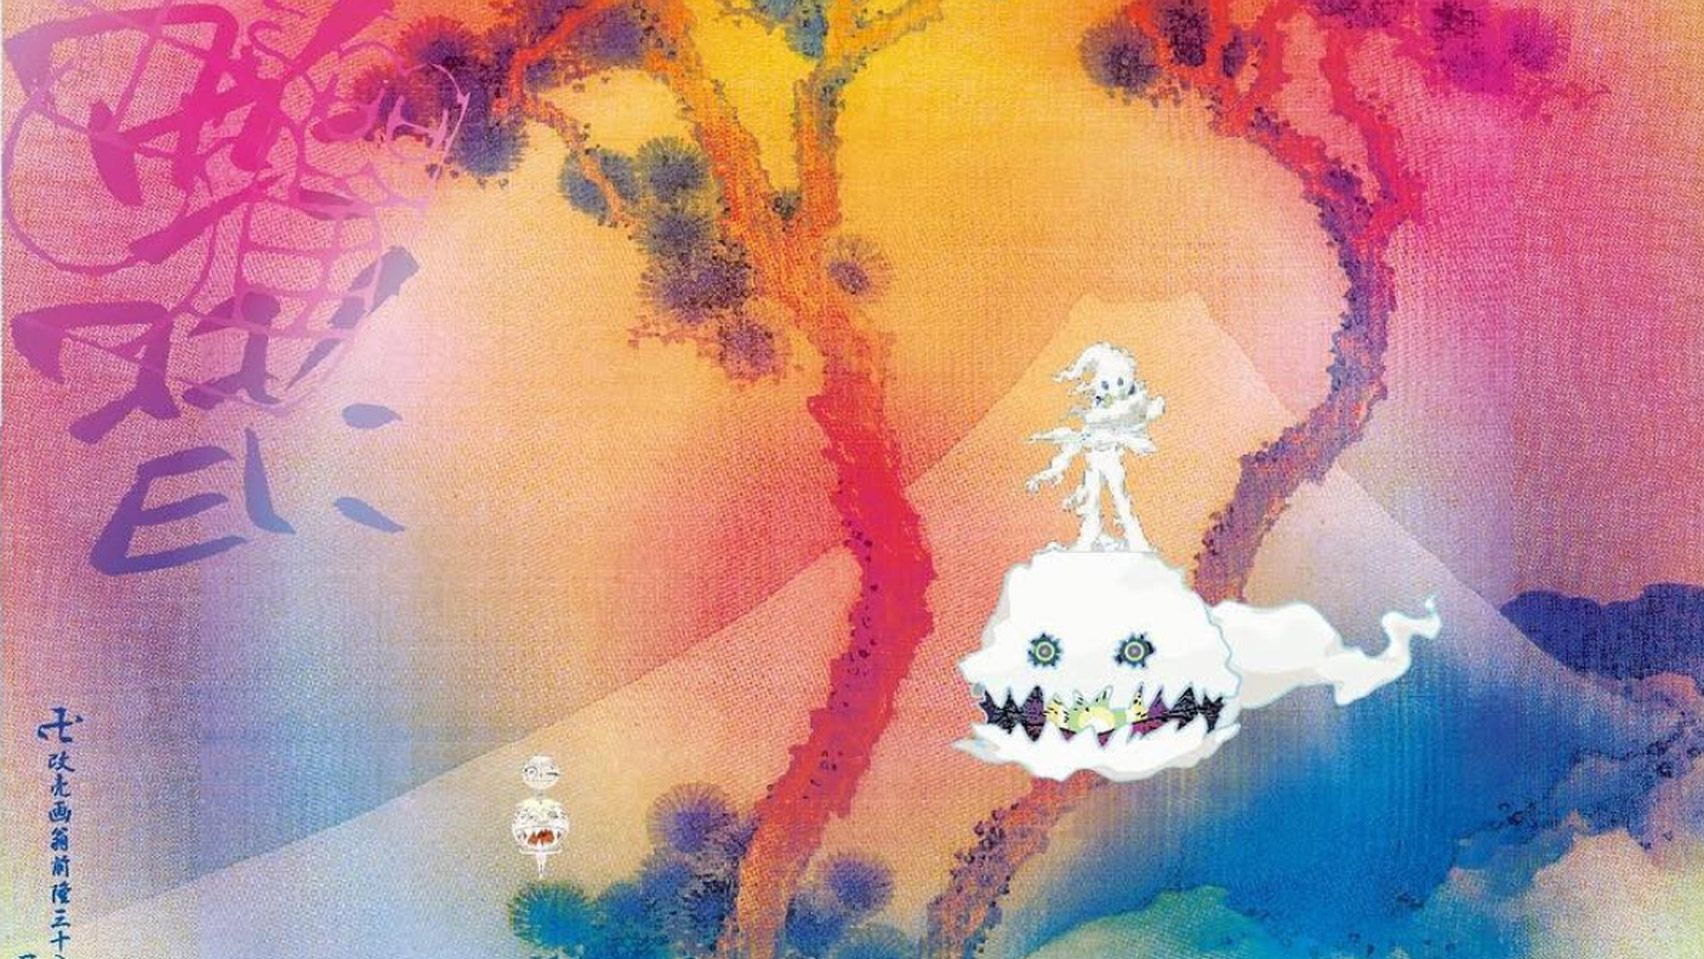 Kanye West And Kid Cudi Have Unveiled Album Artwork Designed By Japanese Artist Takashi Murakami For Their Up Album Cover Art Kid Cudi Albums Cool Album Covers